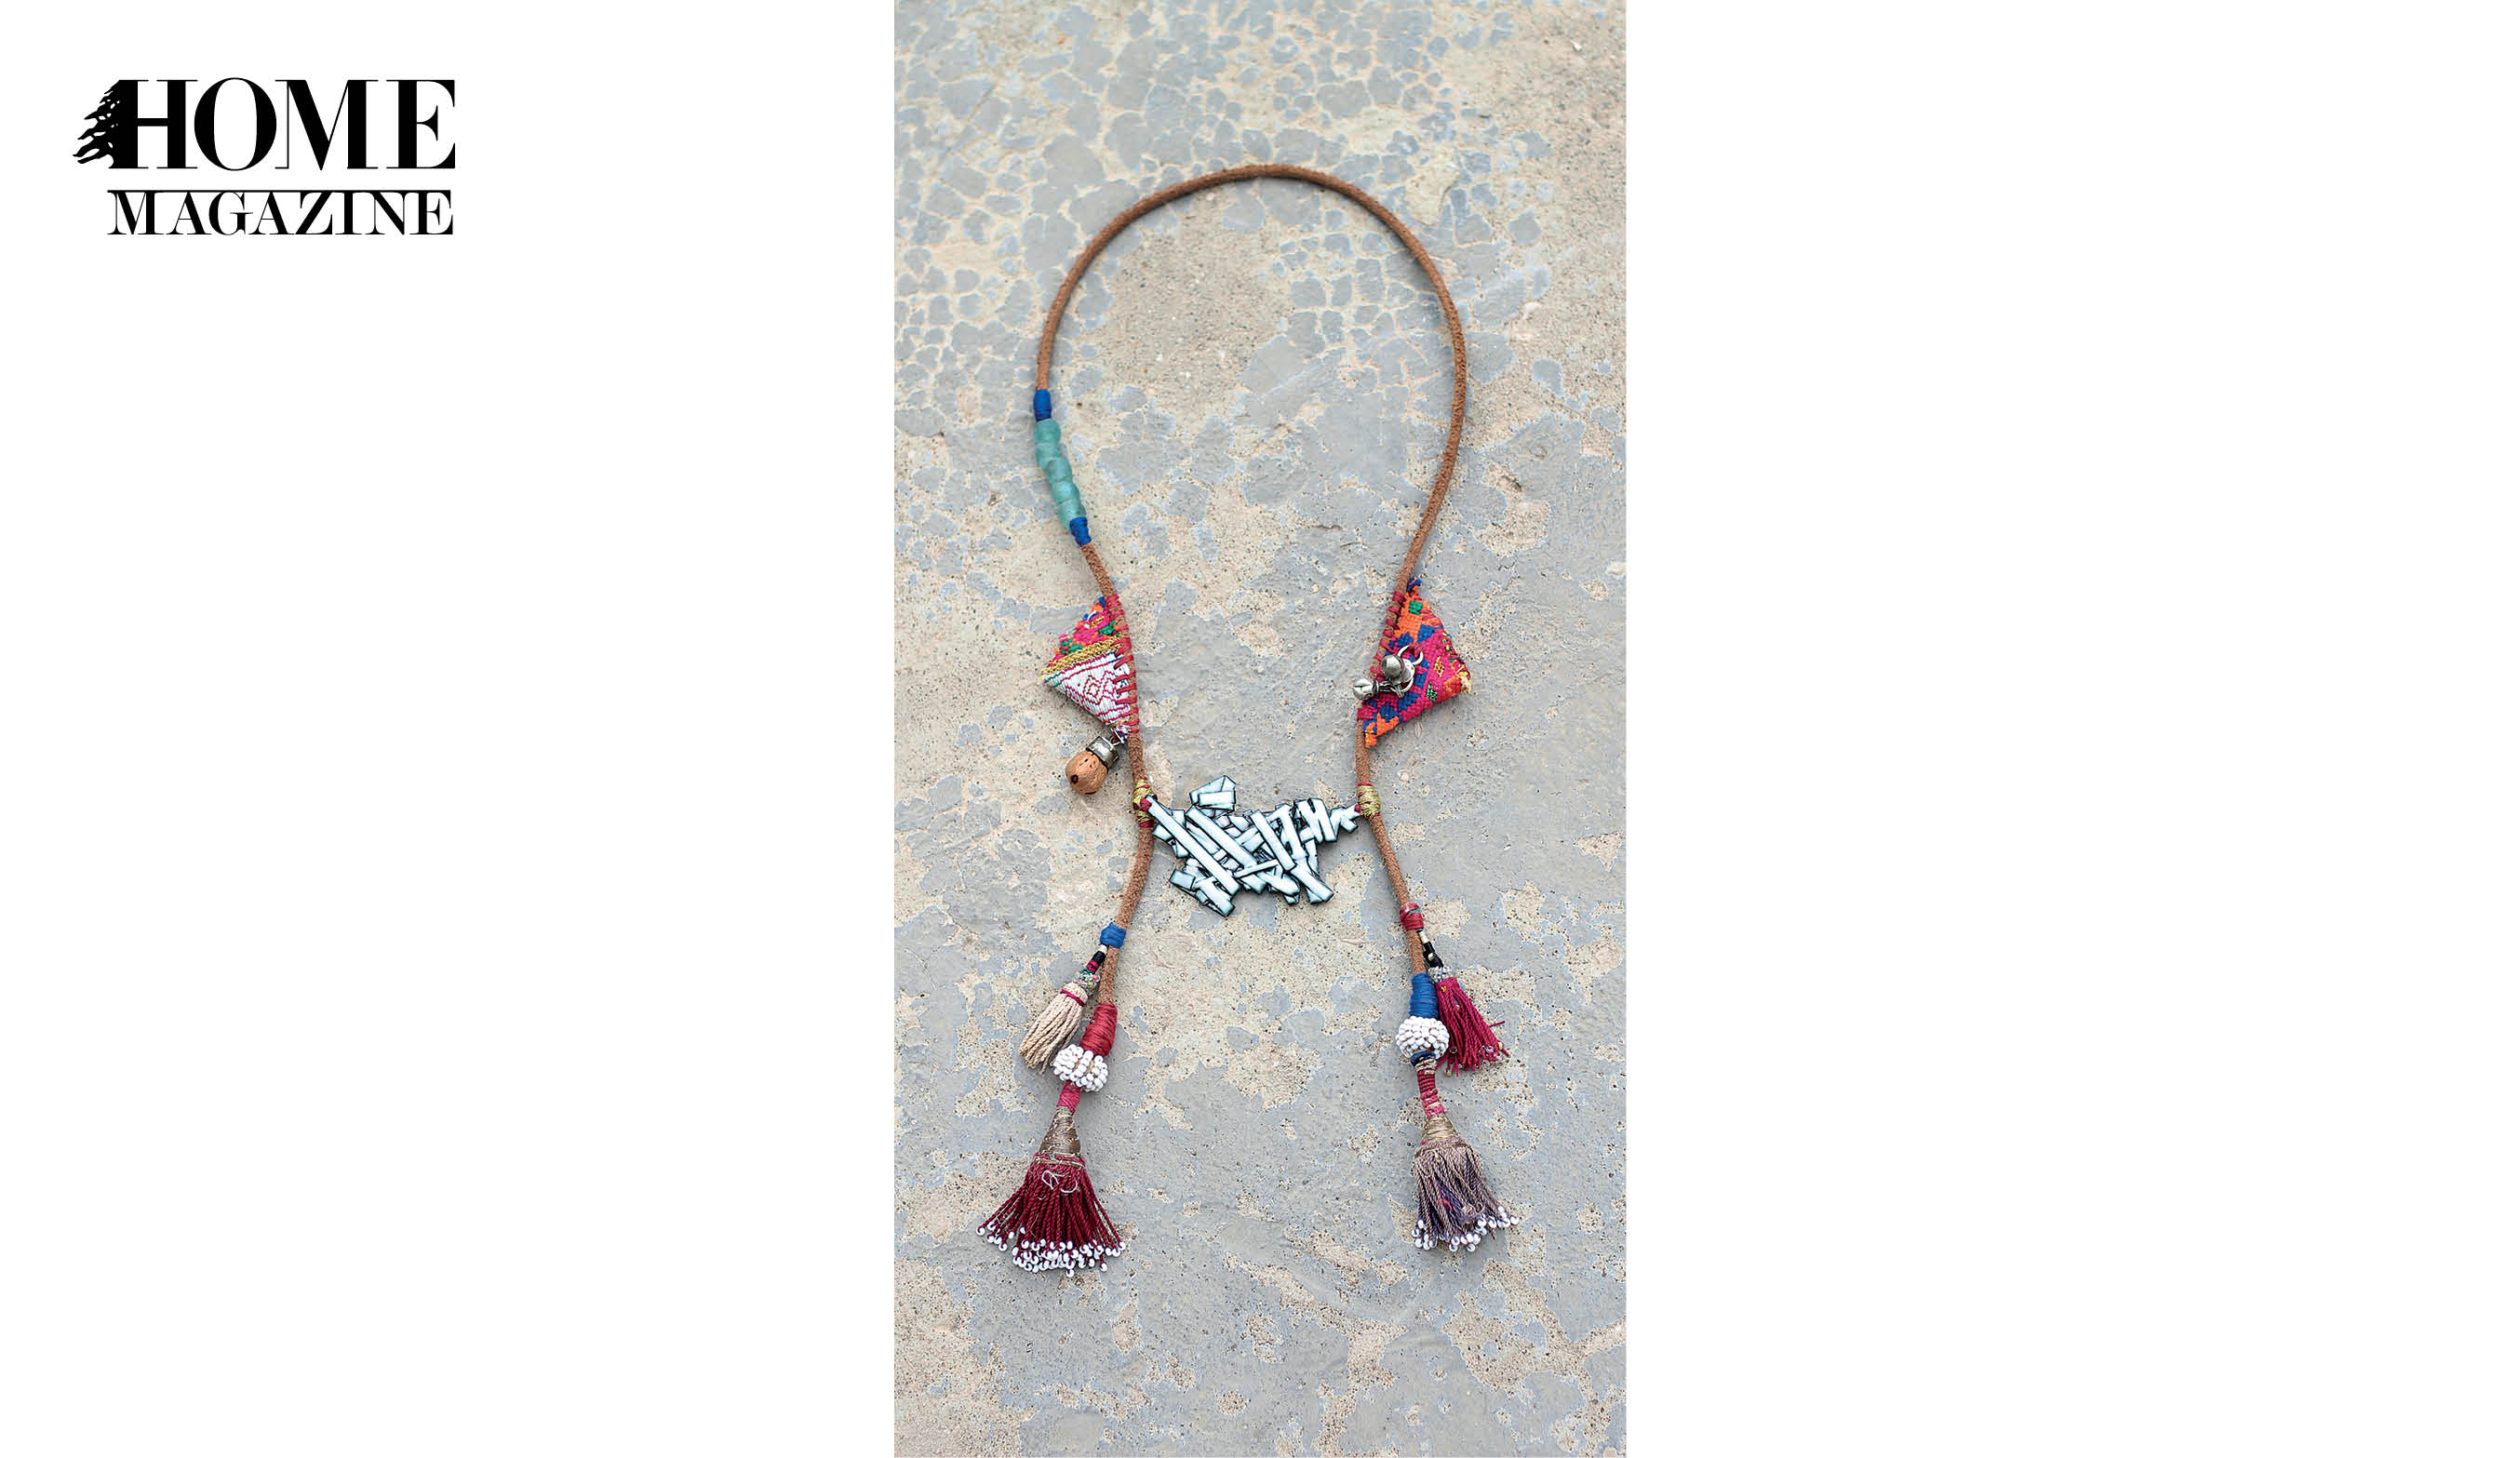 Necklace with middle white shape and multicolored textile